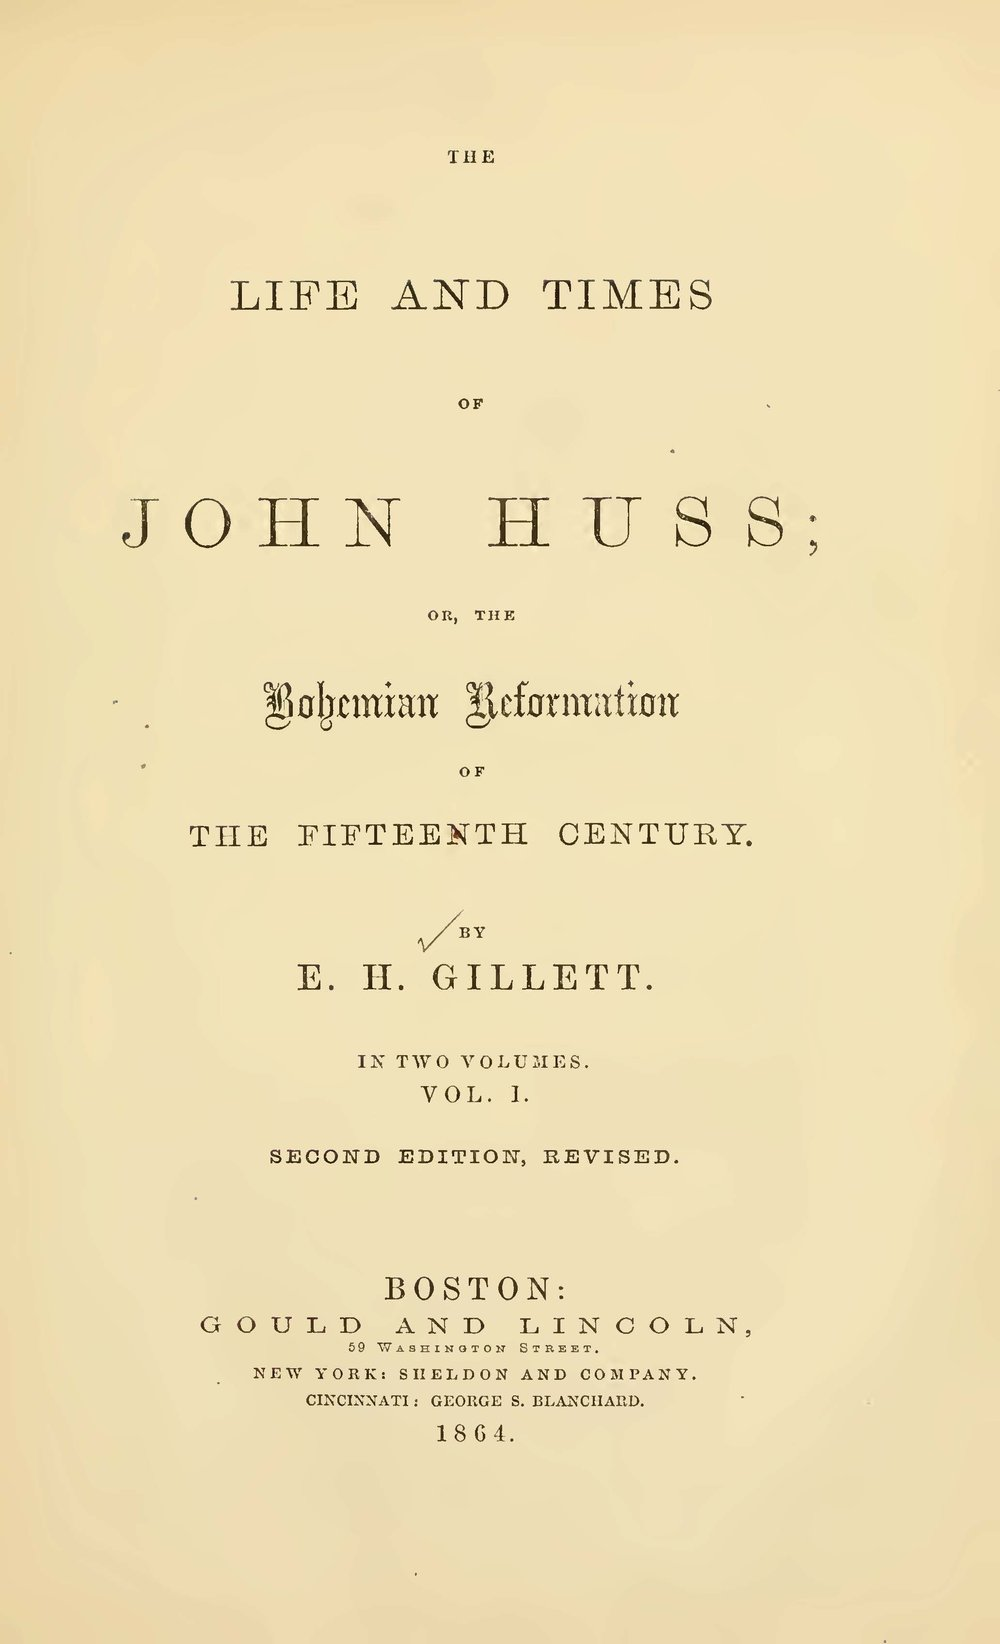 Gillett, Ezra Hall, The Life and Times of John Huss Title Page.jpg